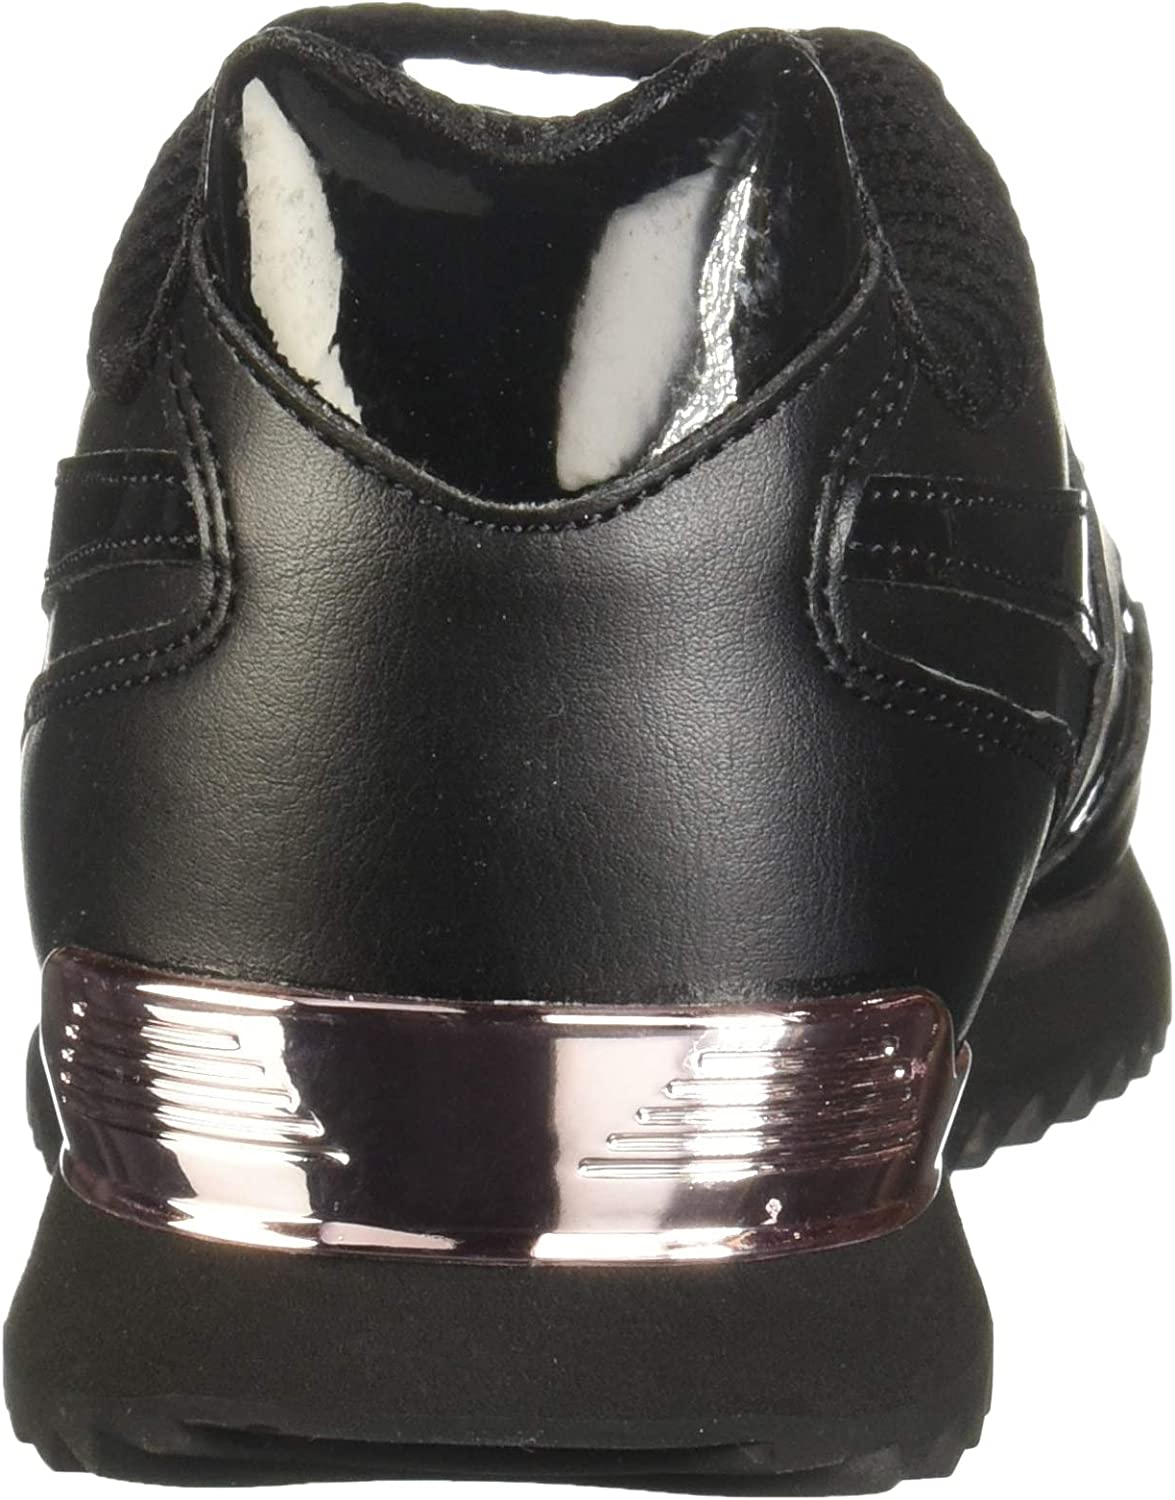 Reebok Mens Royal Glide Rplclp Competition Running Shoes